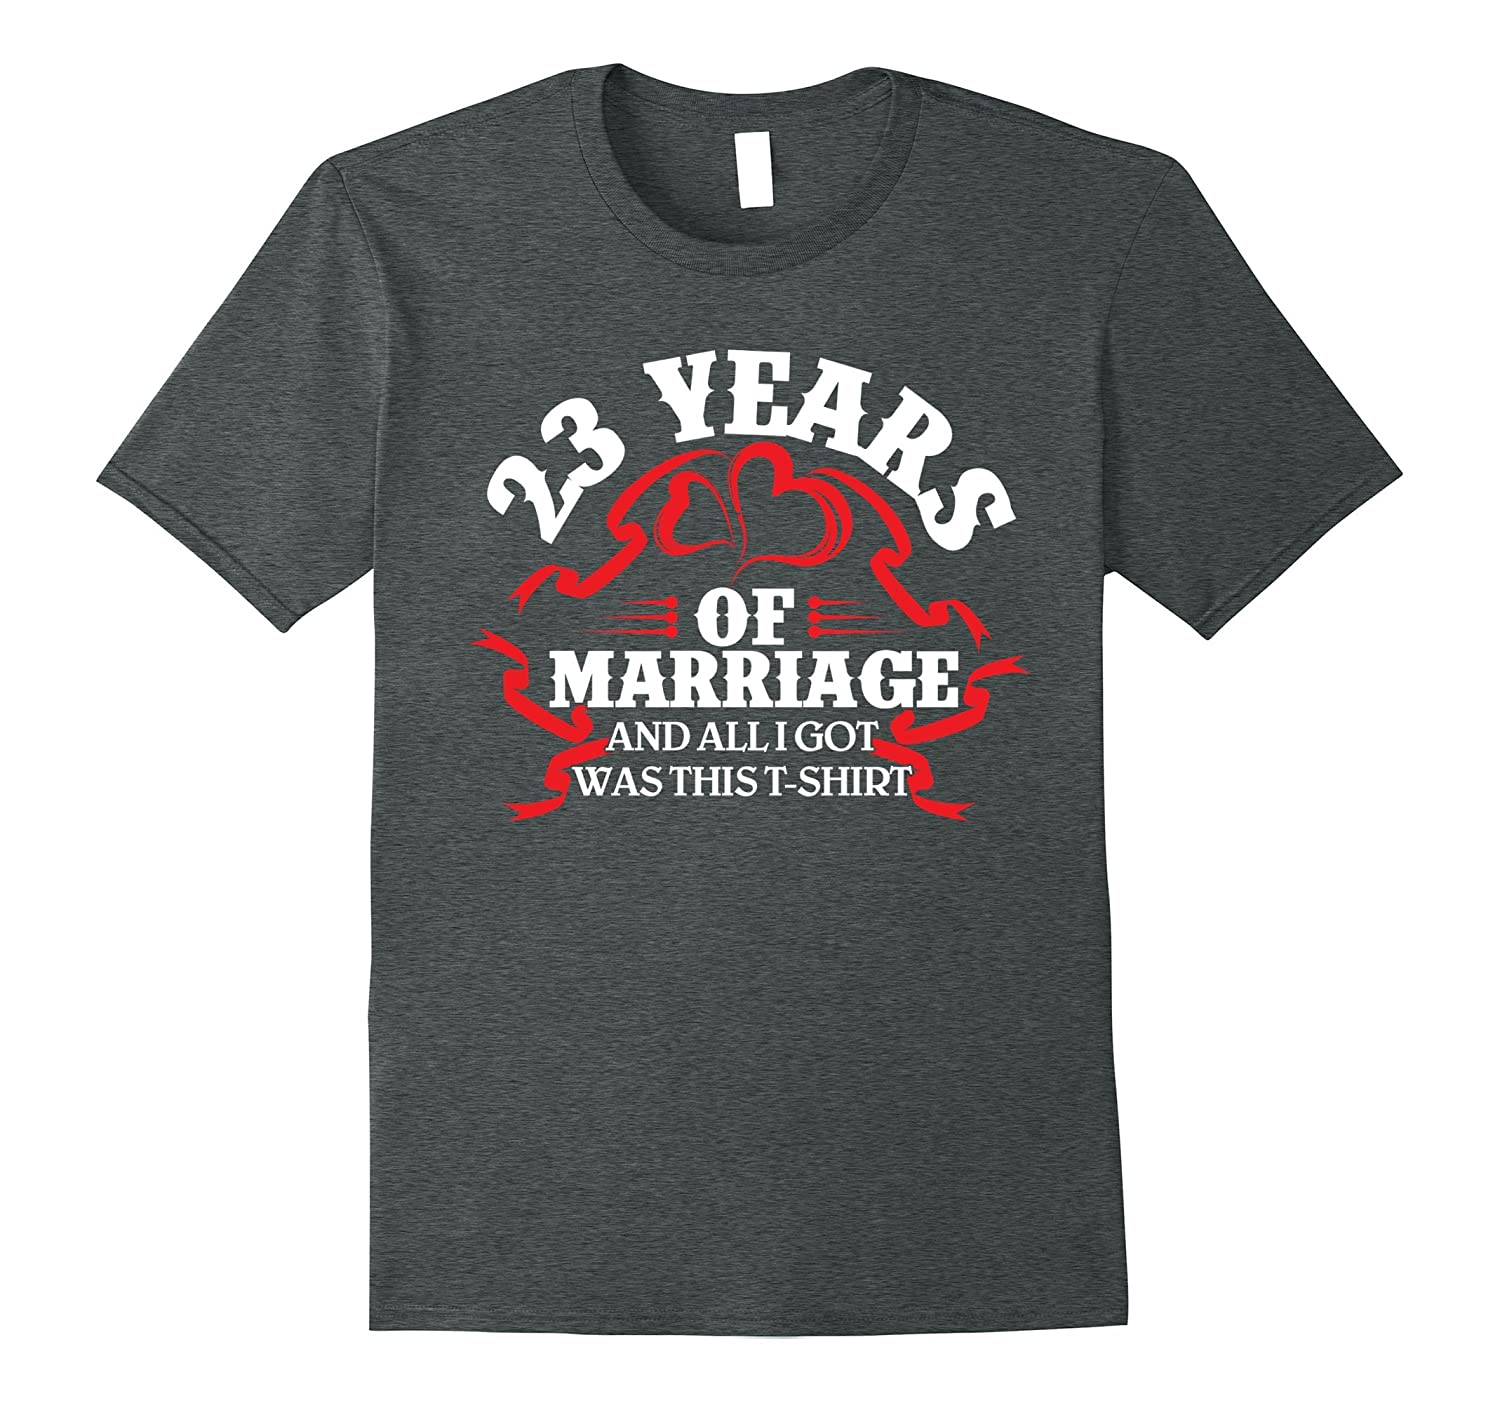 Cool T Shirt 23rd Wedding Anniversary Gifts For Herhim Pl